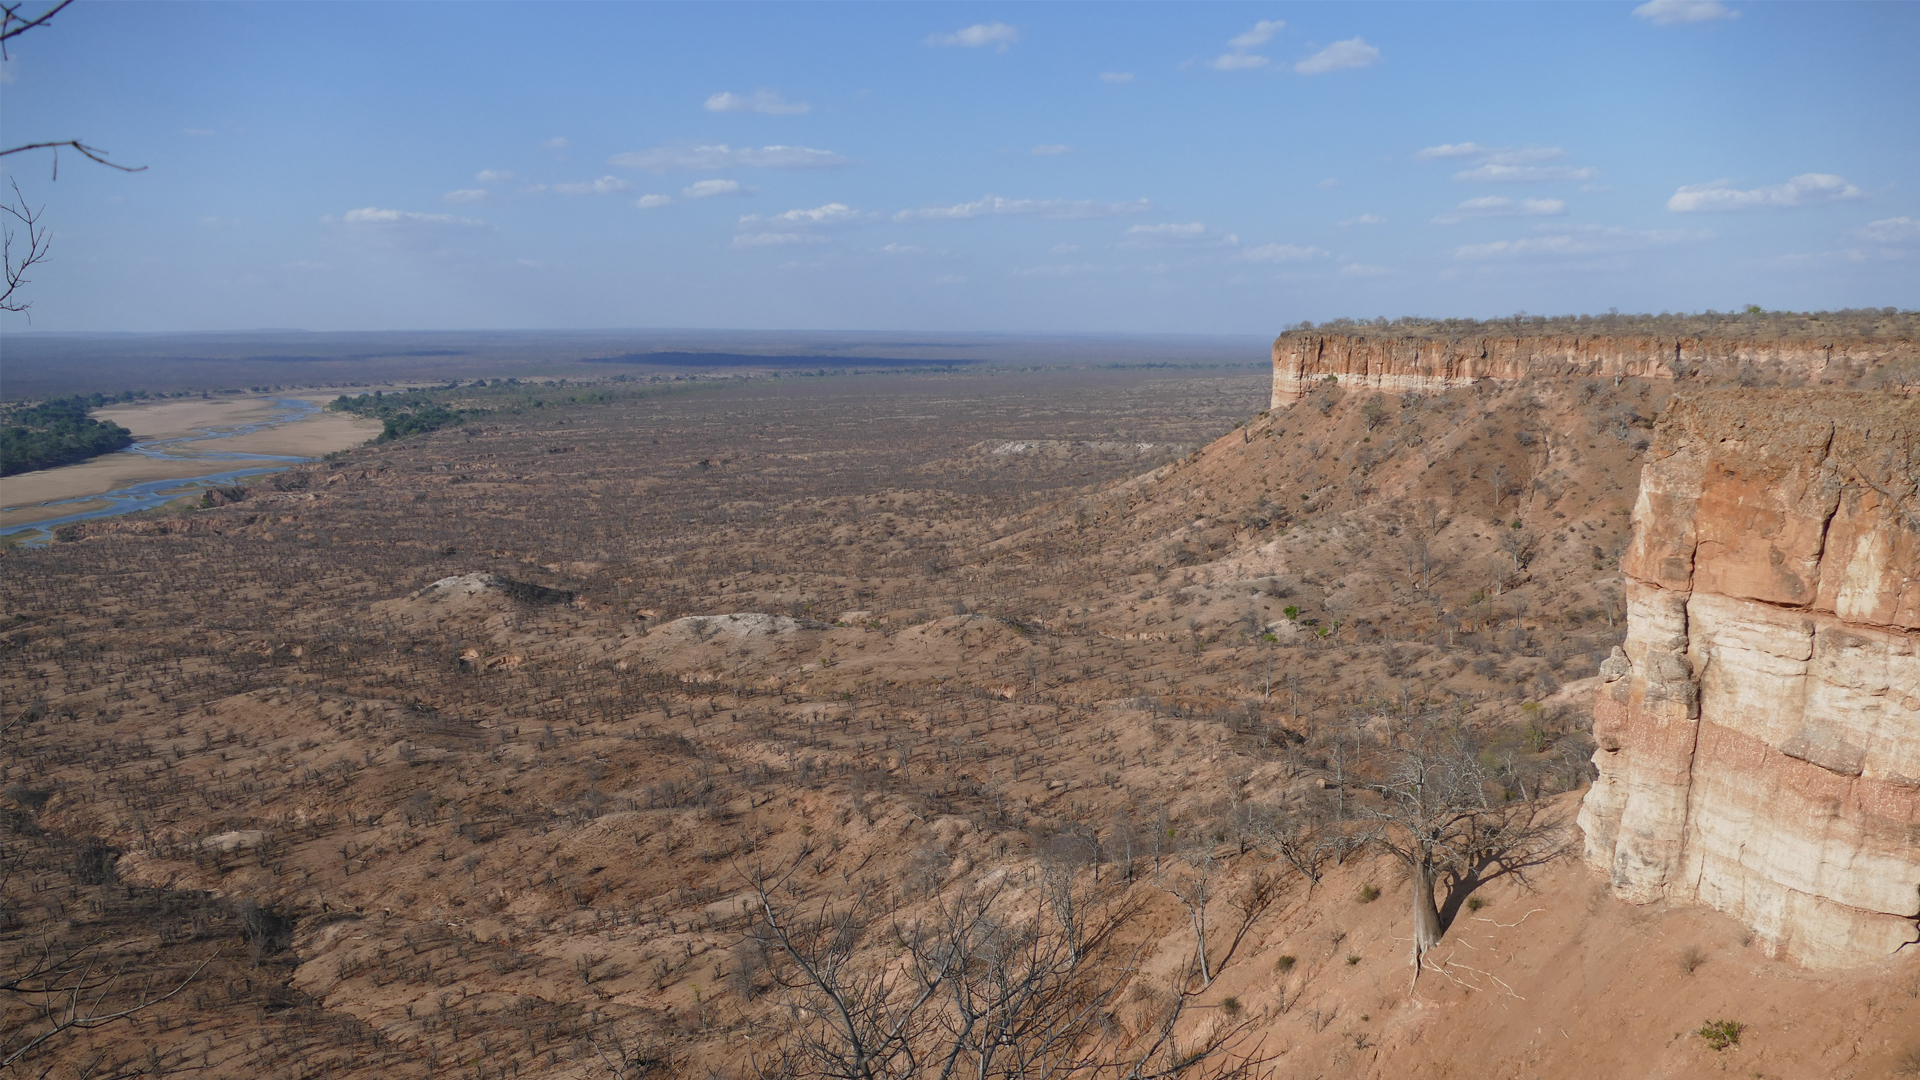 zimbabwe regions Gonarezhou chilojo cliffs